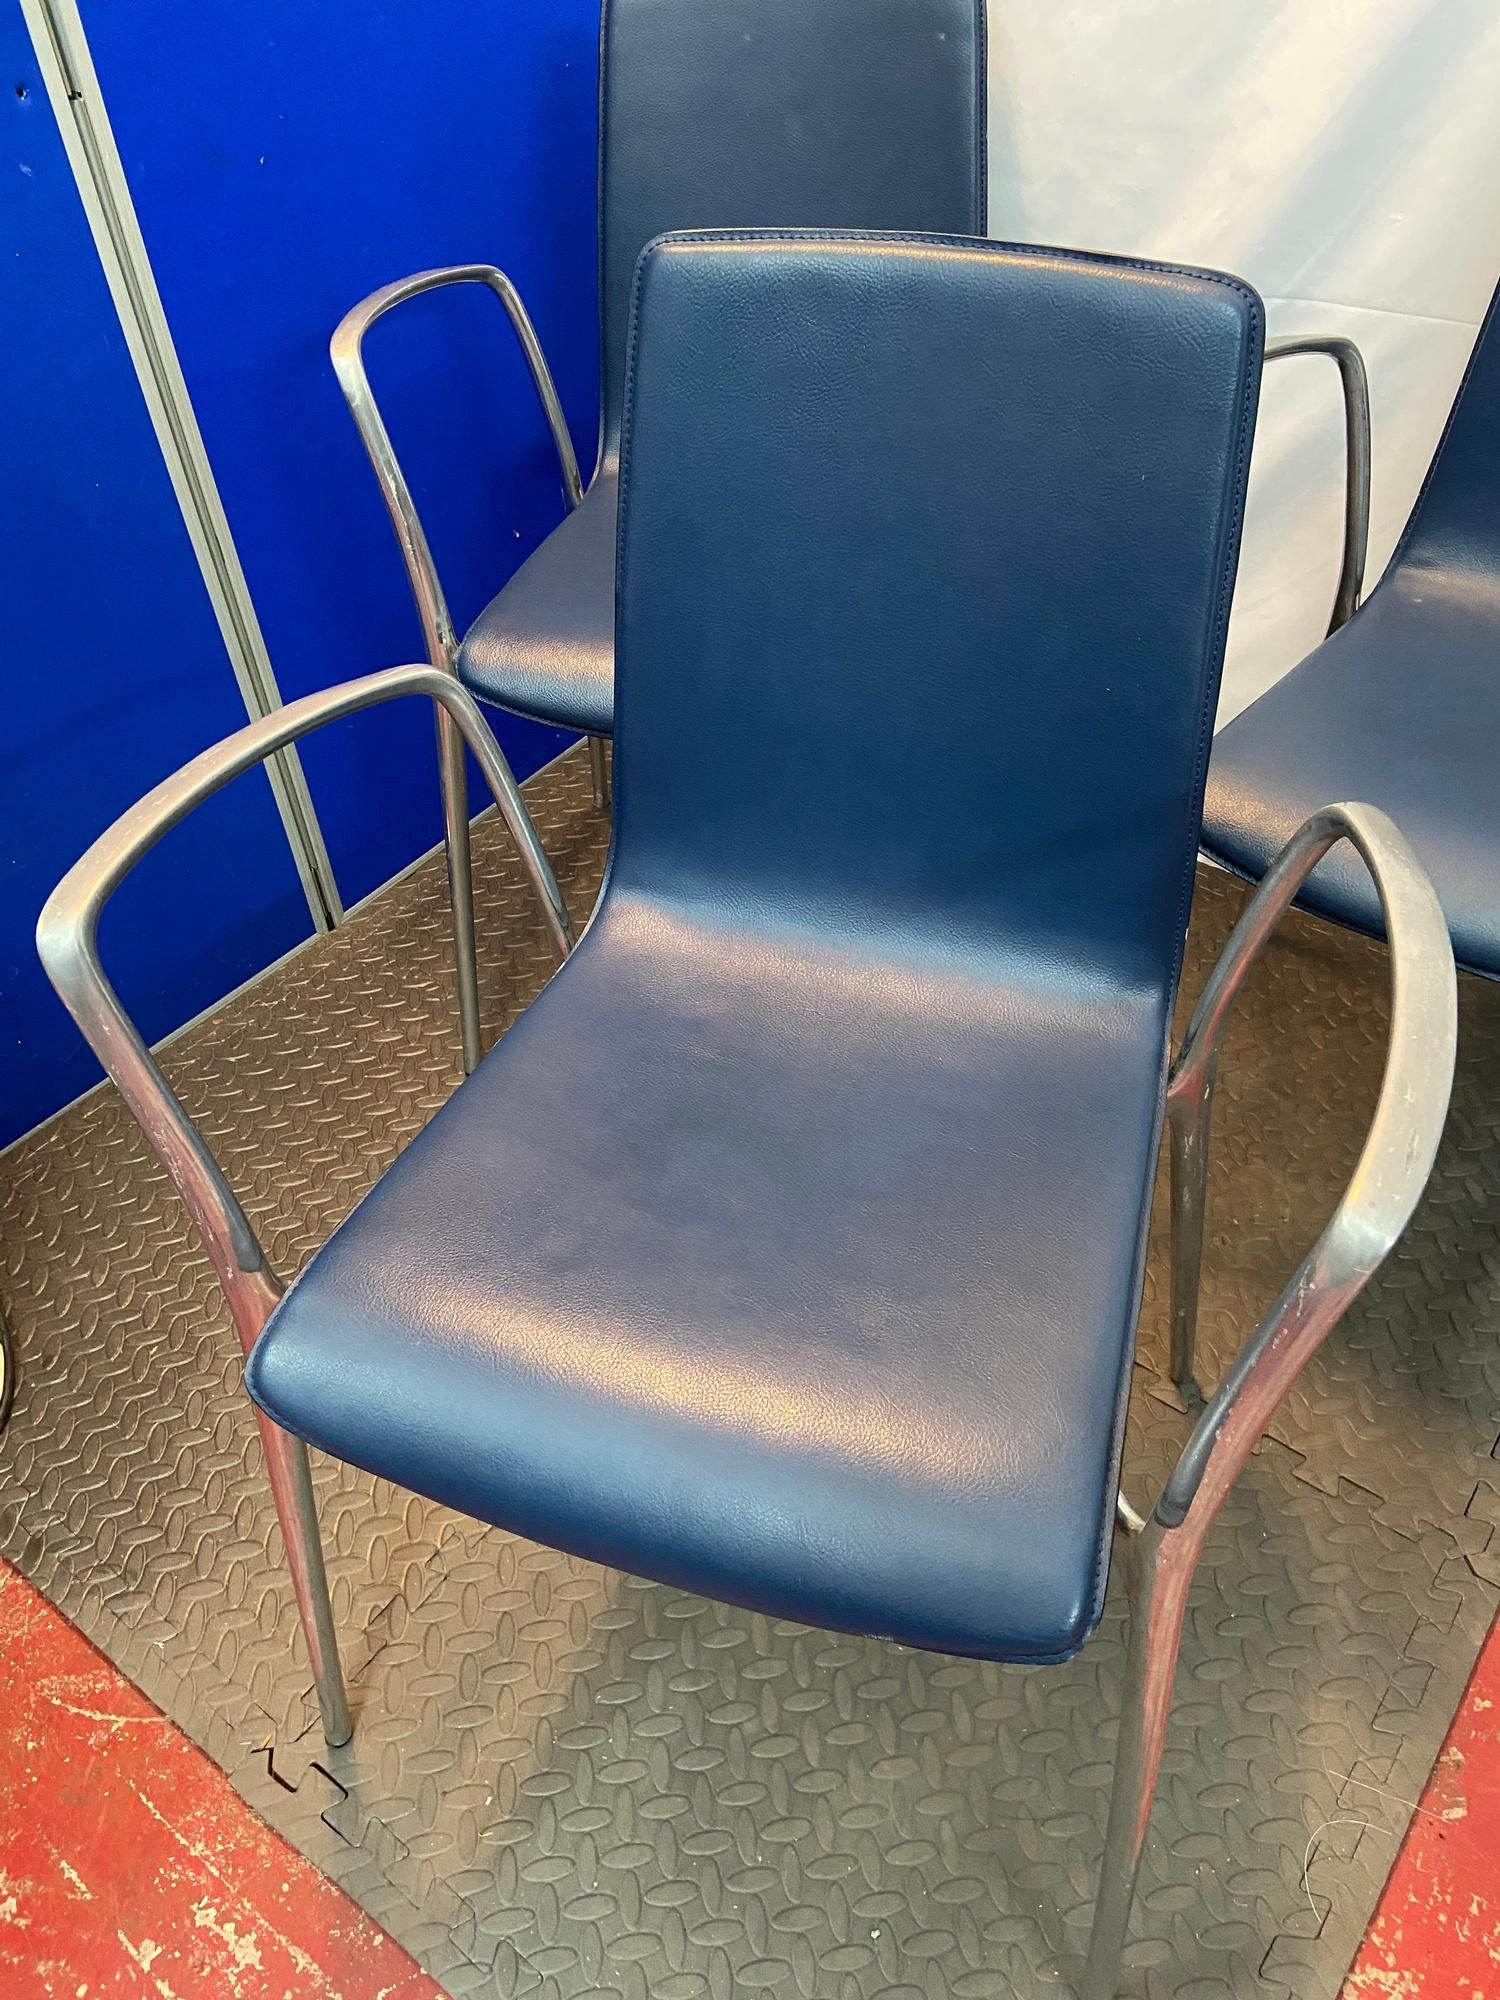 A Set of four Spanish designer Akaba dining chairs designed by Jorge Pensi. Blue leather material - Image 6 of 6